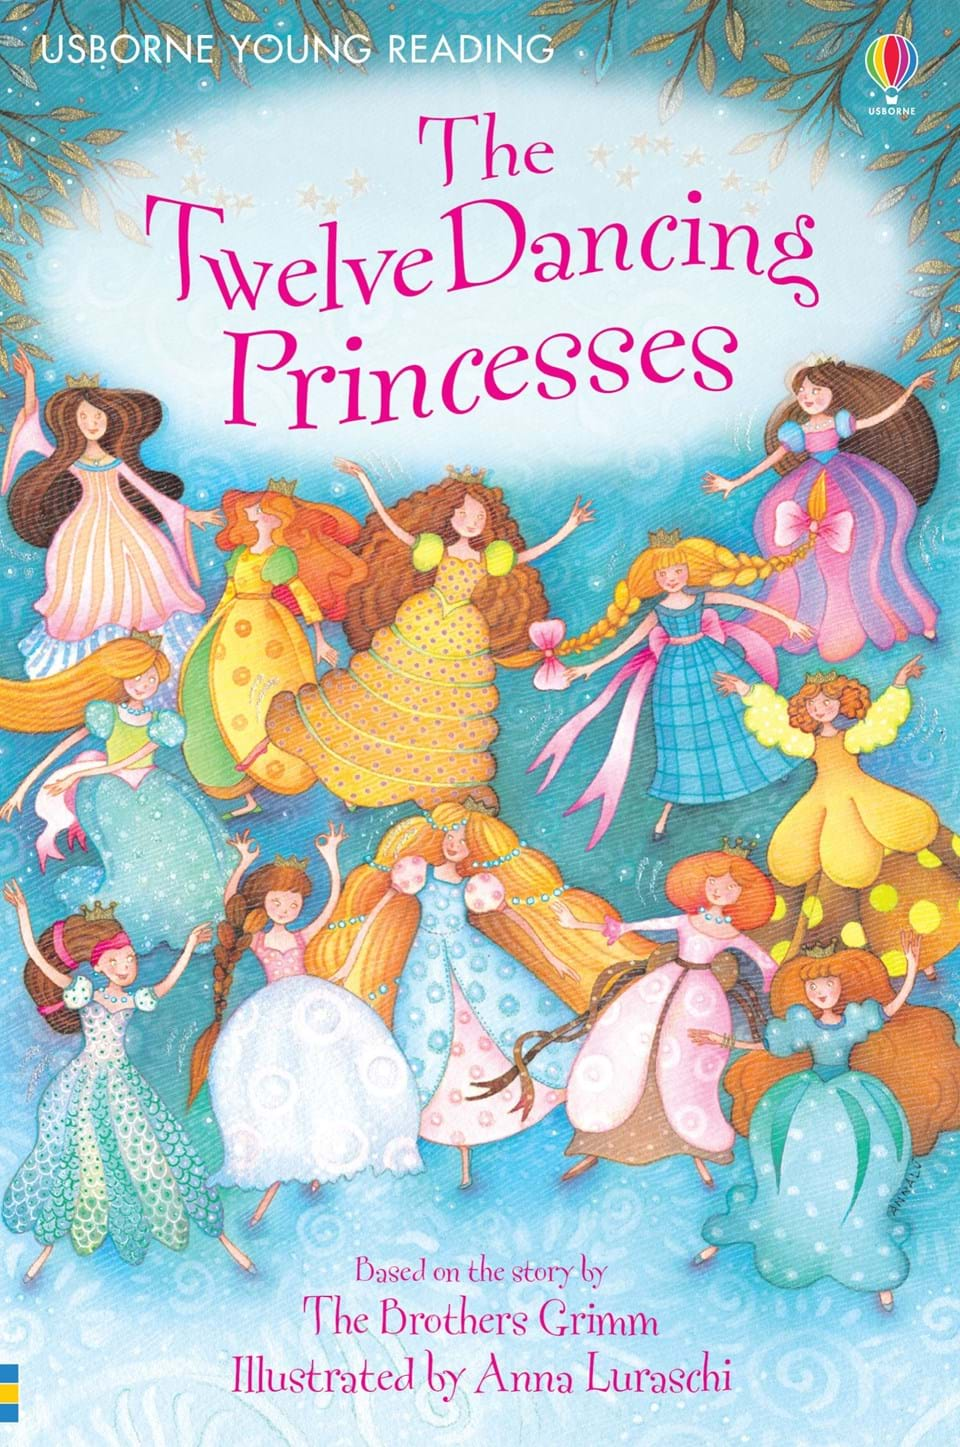 Free Download Barbie In The 12 Dancing Princessess Shine W Lyrics MP3 Size And Princesses Theme Song Piano Synthesia Mp3